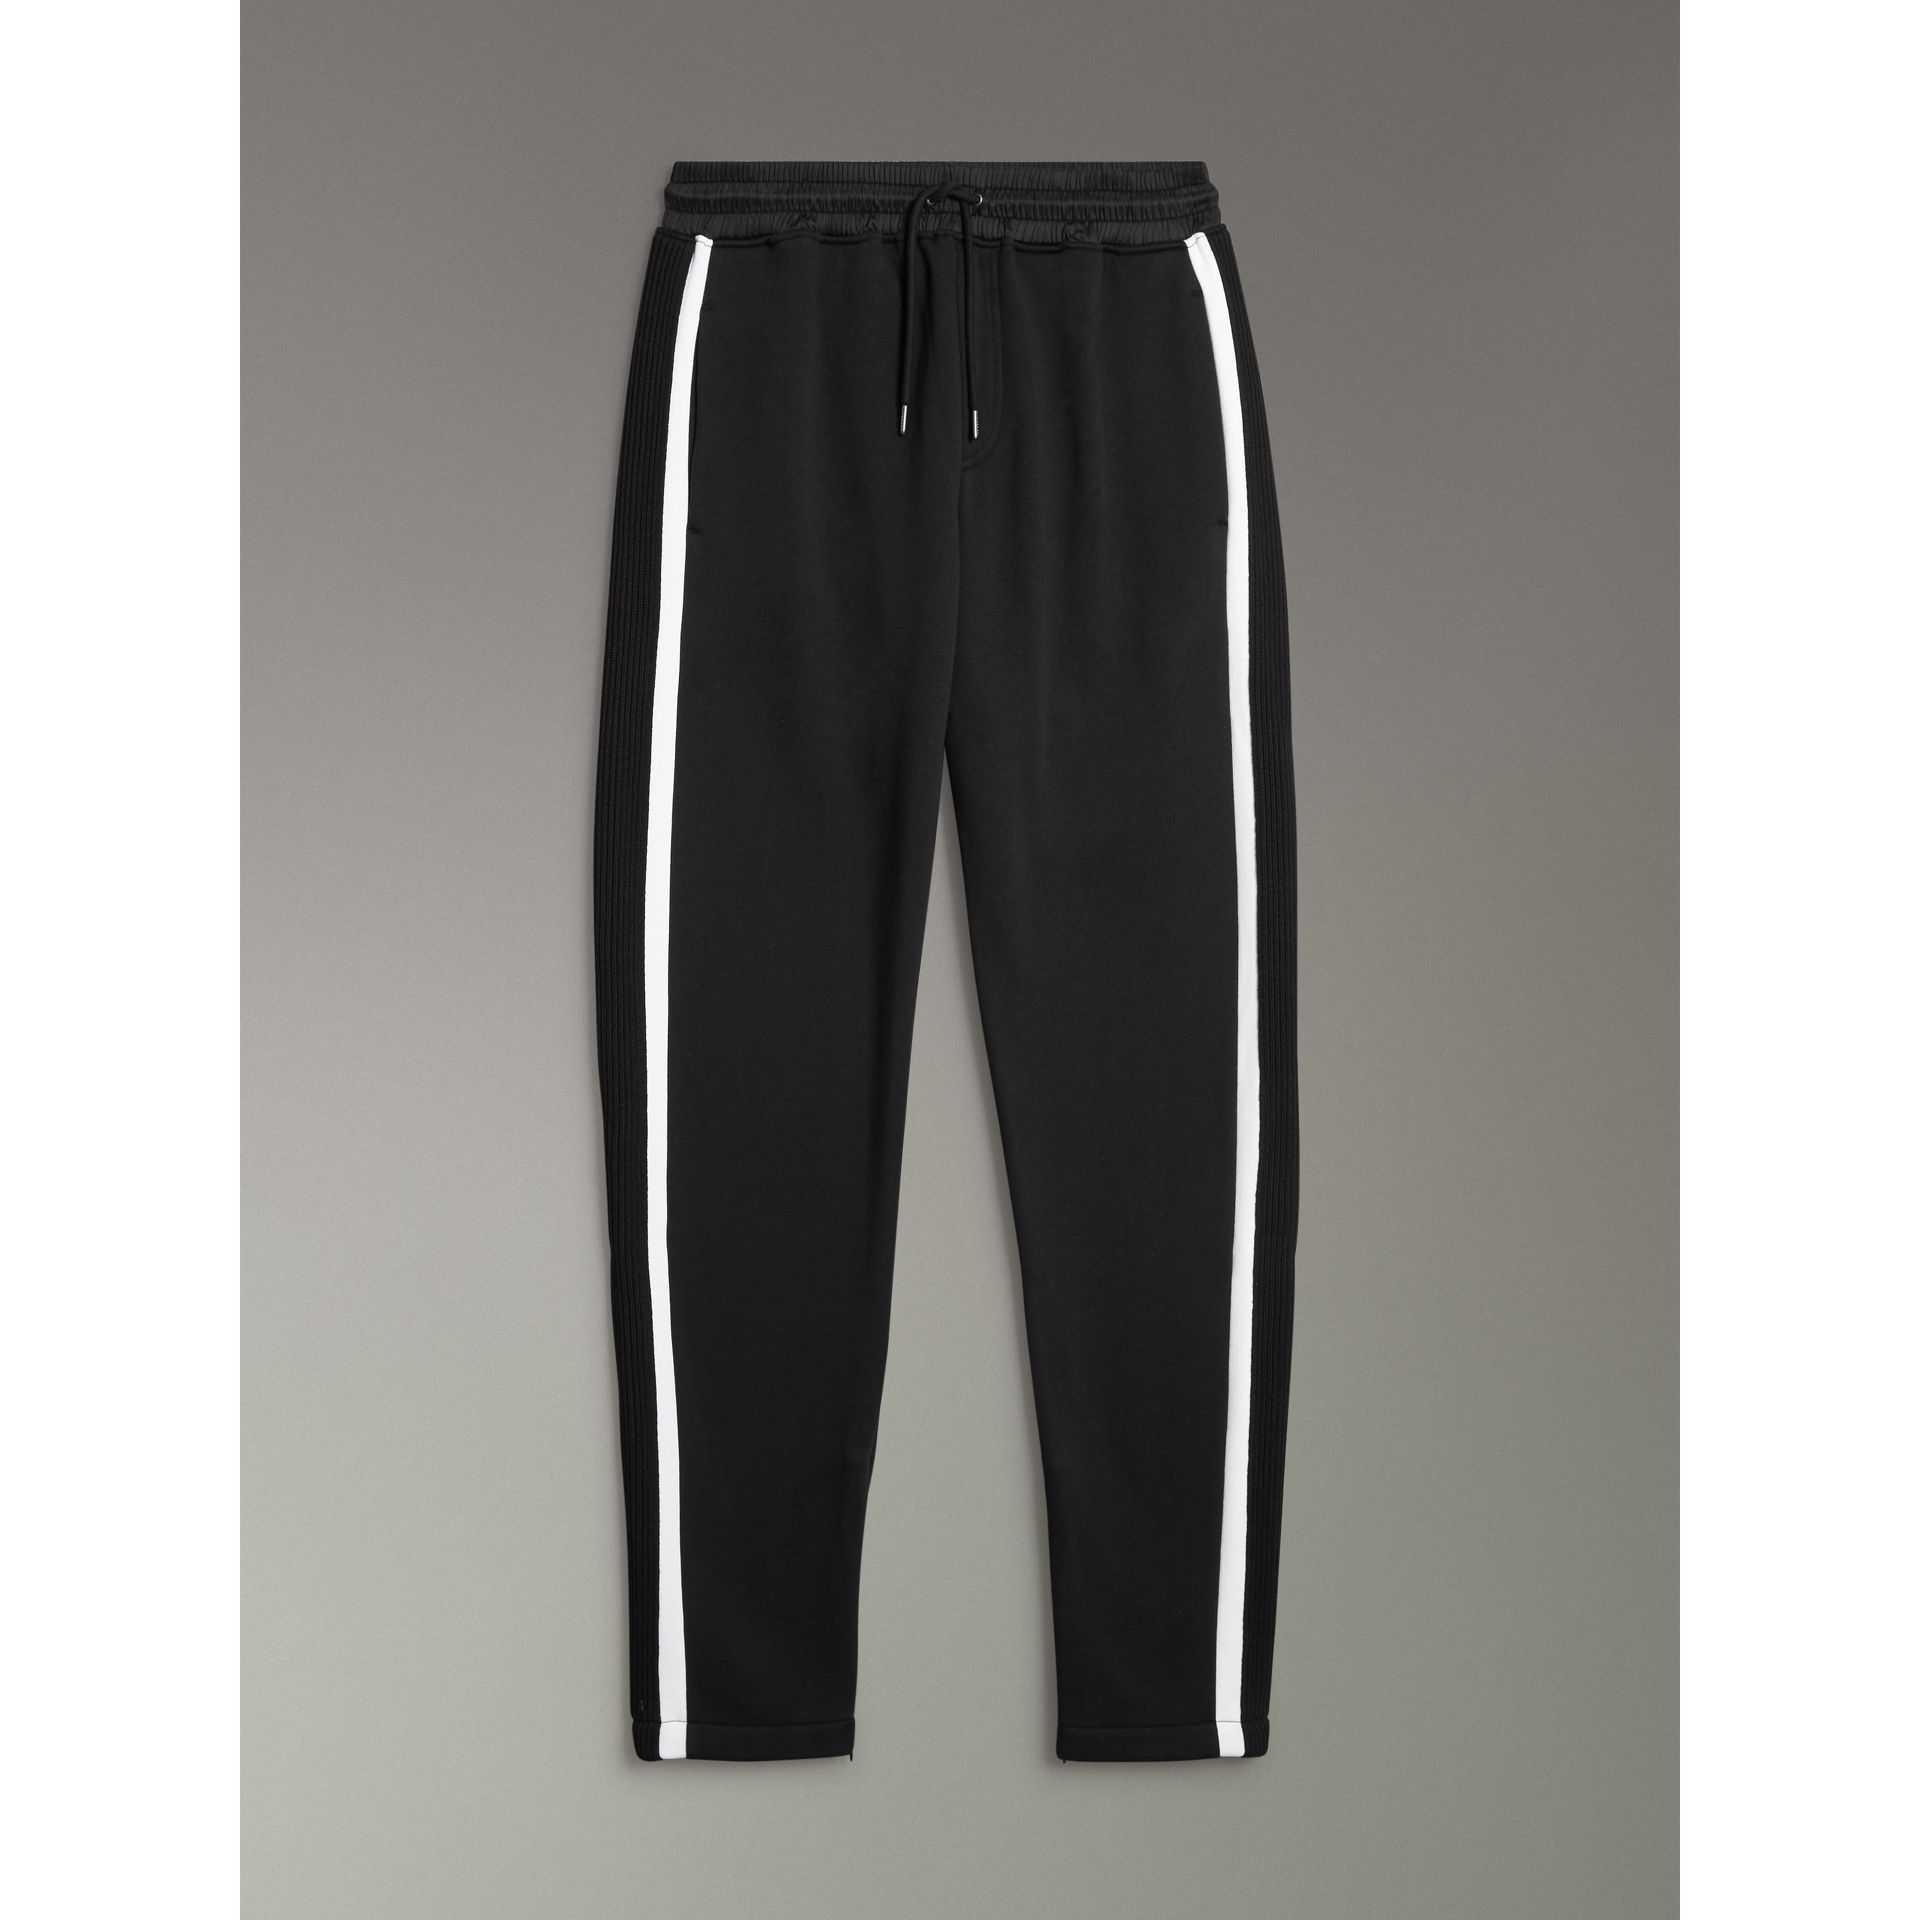 Stripe Detail Cotton Blend Jersey Sweatpants in Black - Men | Burberry - gallery image 3